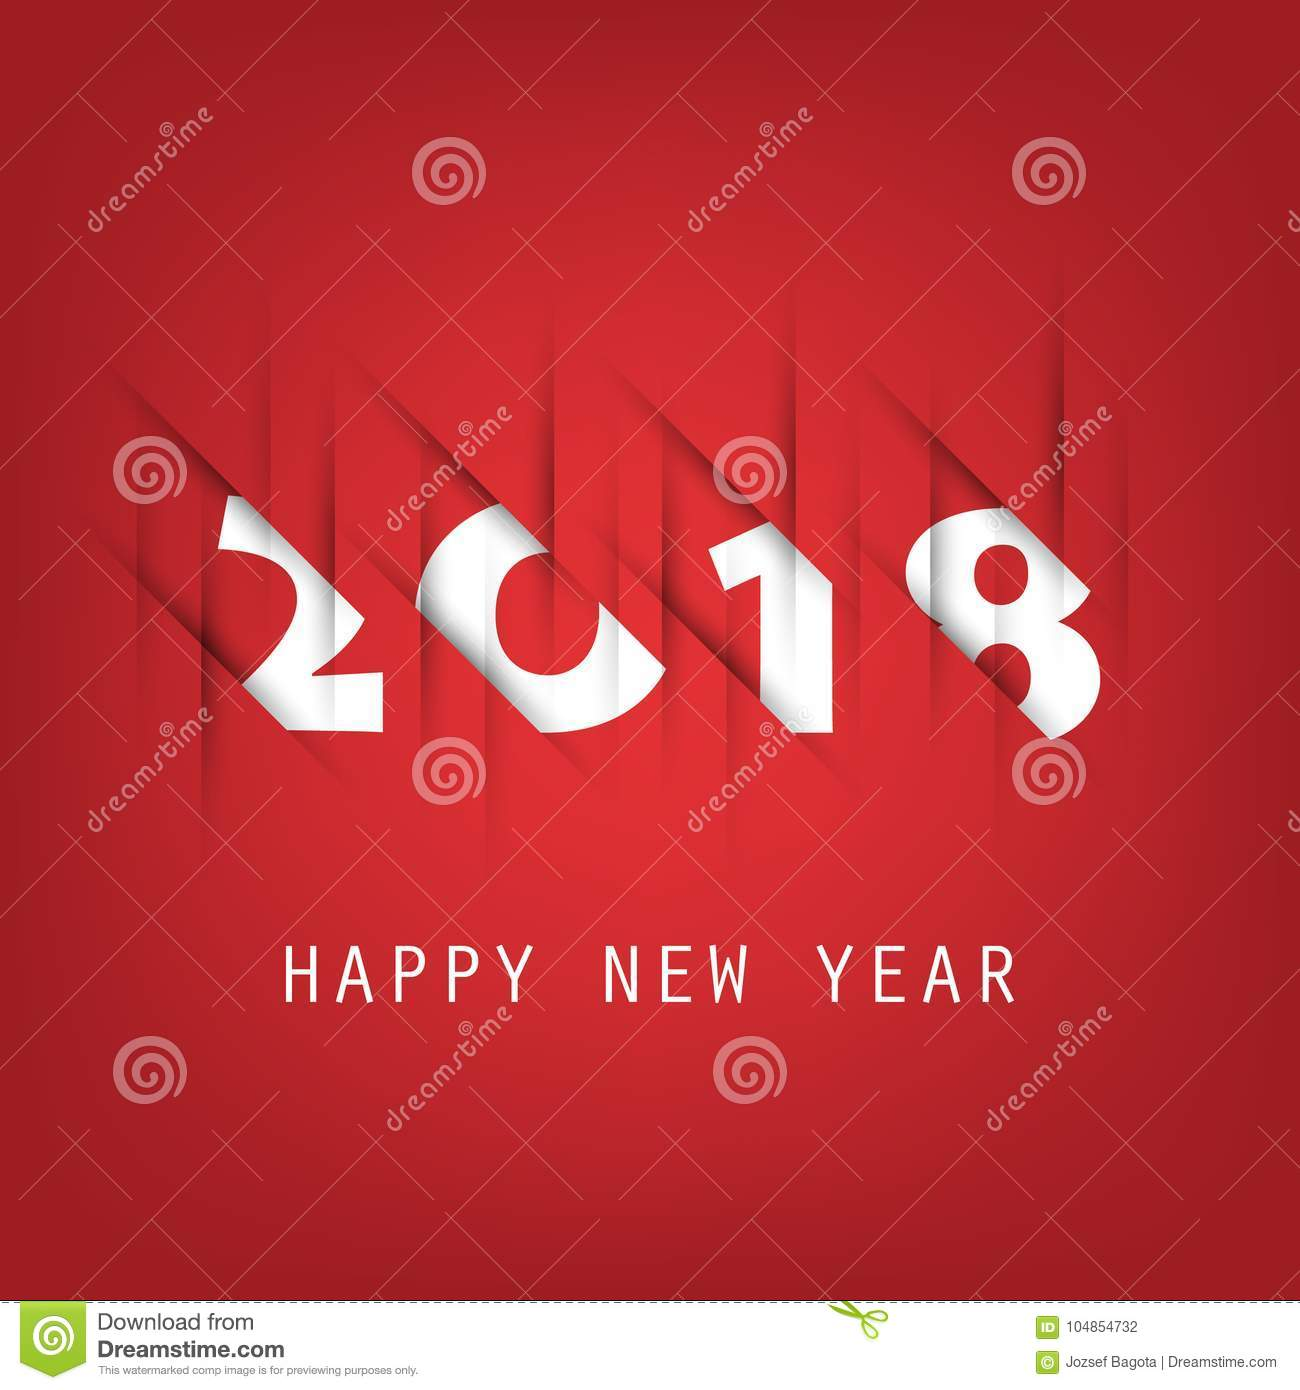 best wishes abstract colorful new year card cover or background design template with numerals illustration in freely scalable and editable vector